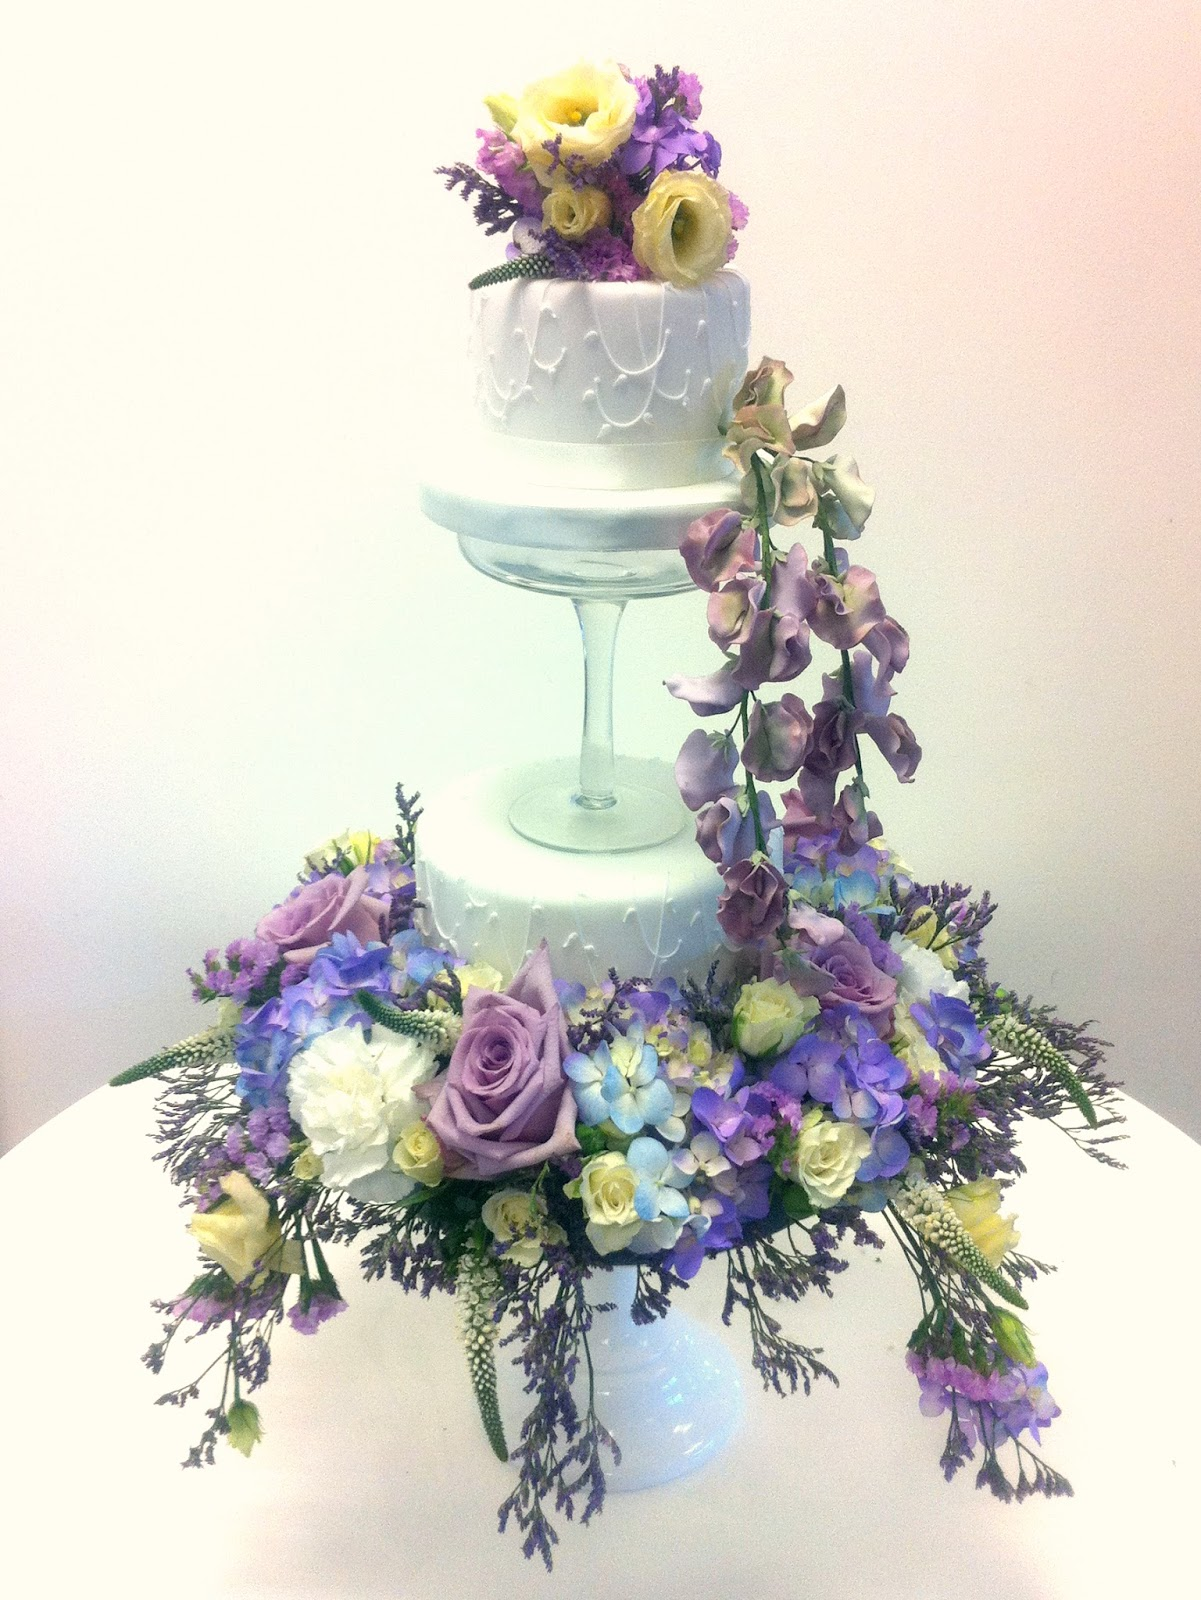 Cherie Kelly's Tiered Cake with Fresh Flower